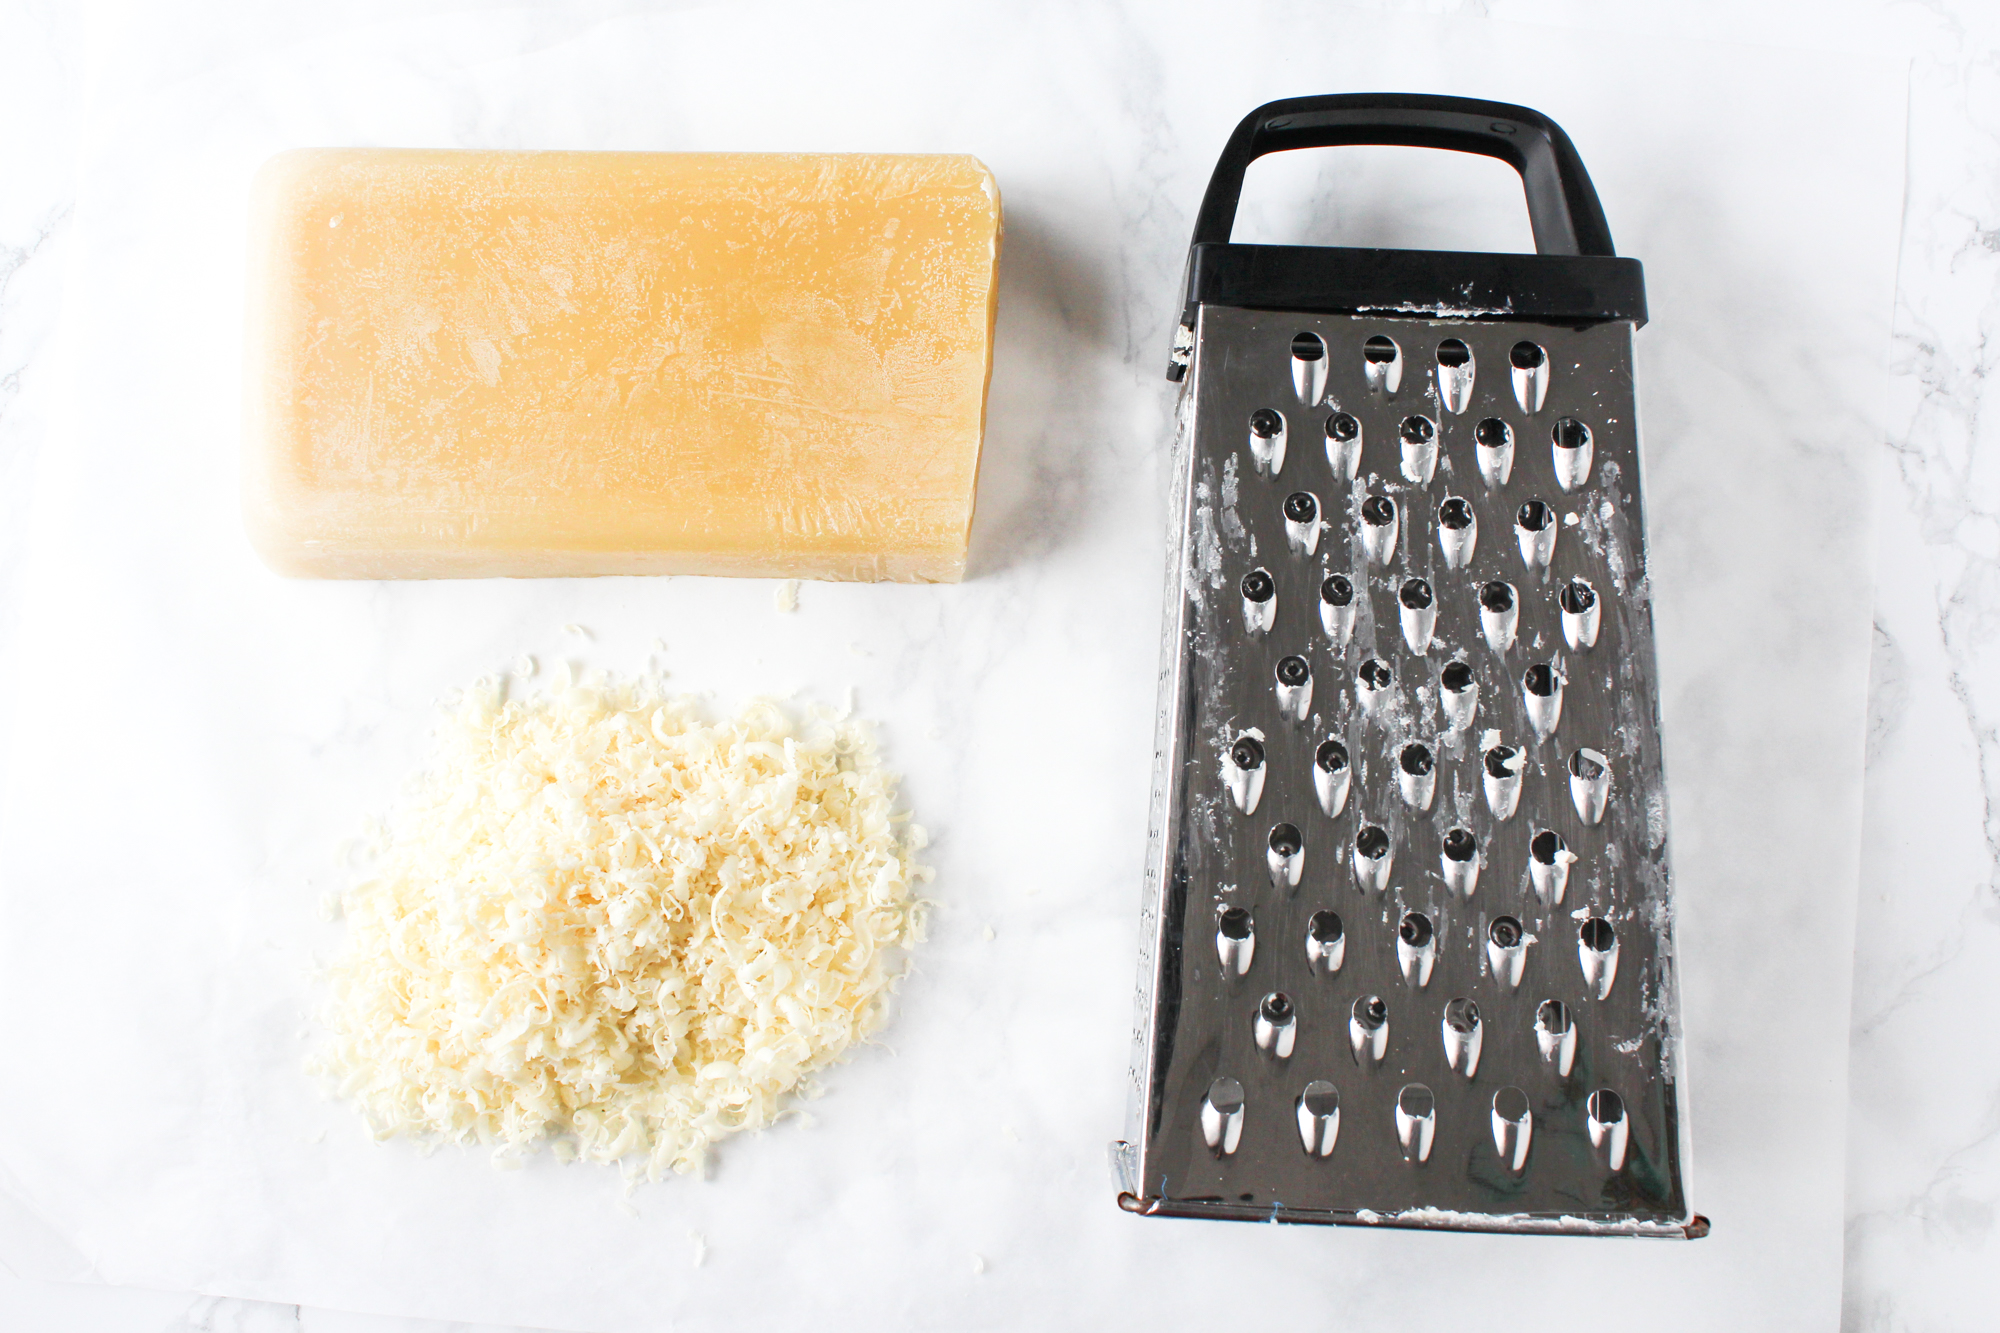 Picture of Grate and Measure the Beeswax